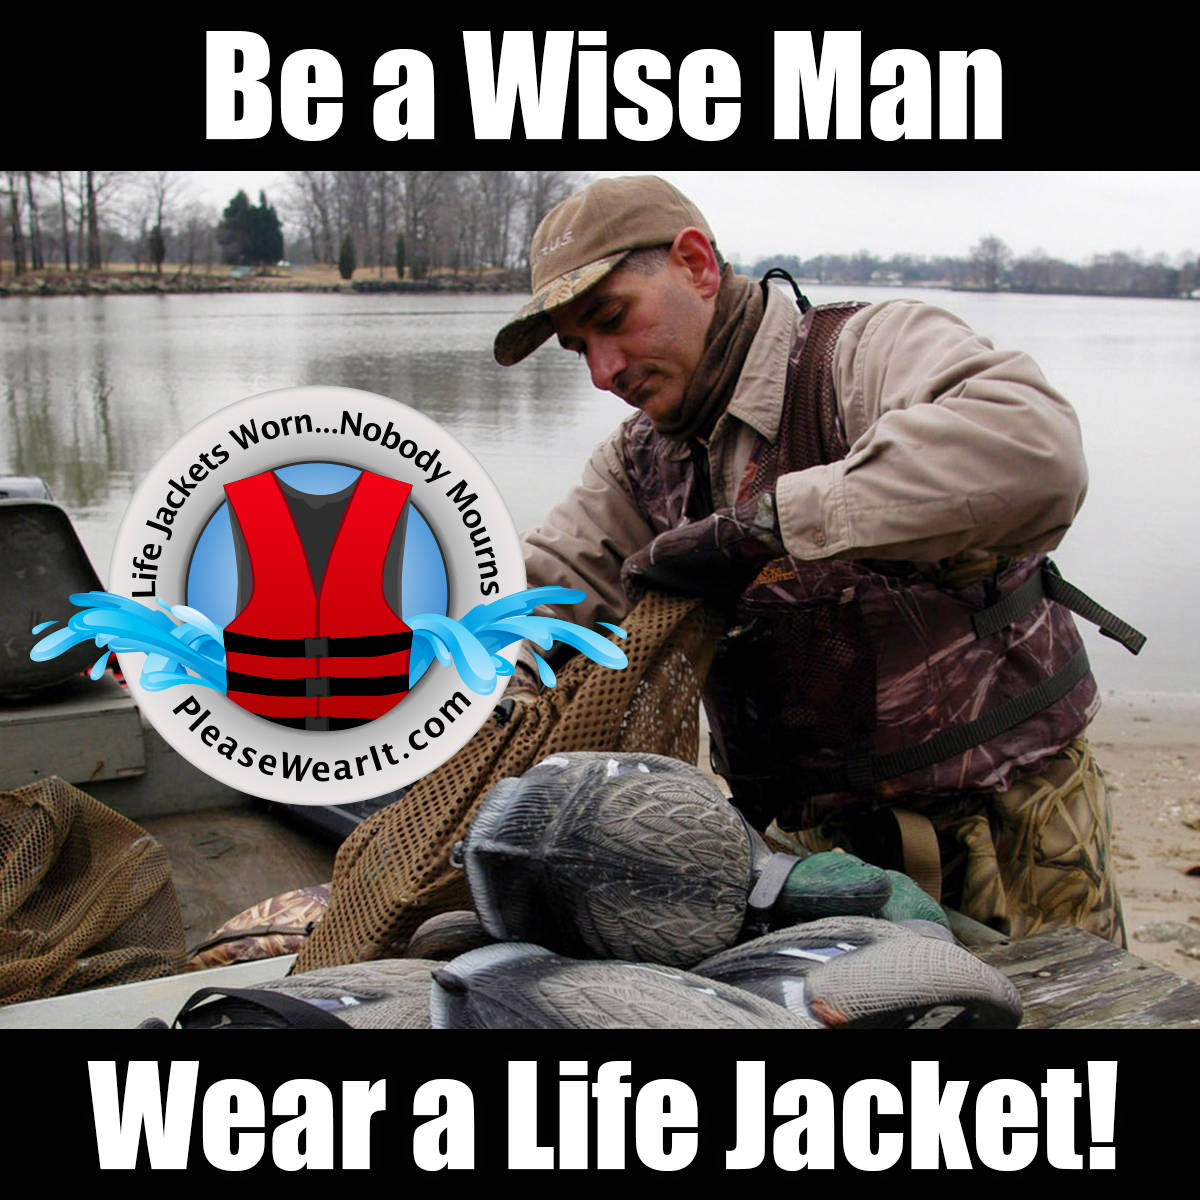 Be a wise man. Wear your life jacket.